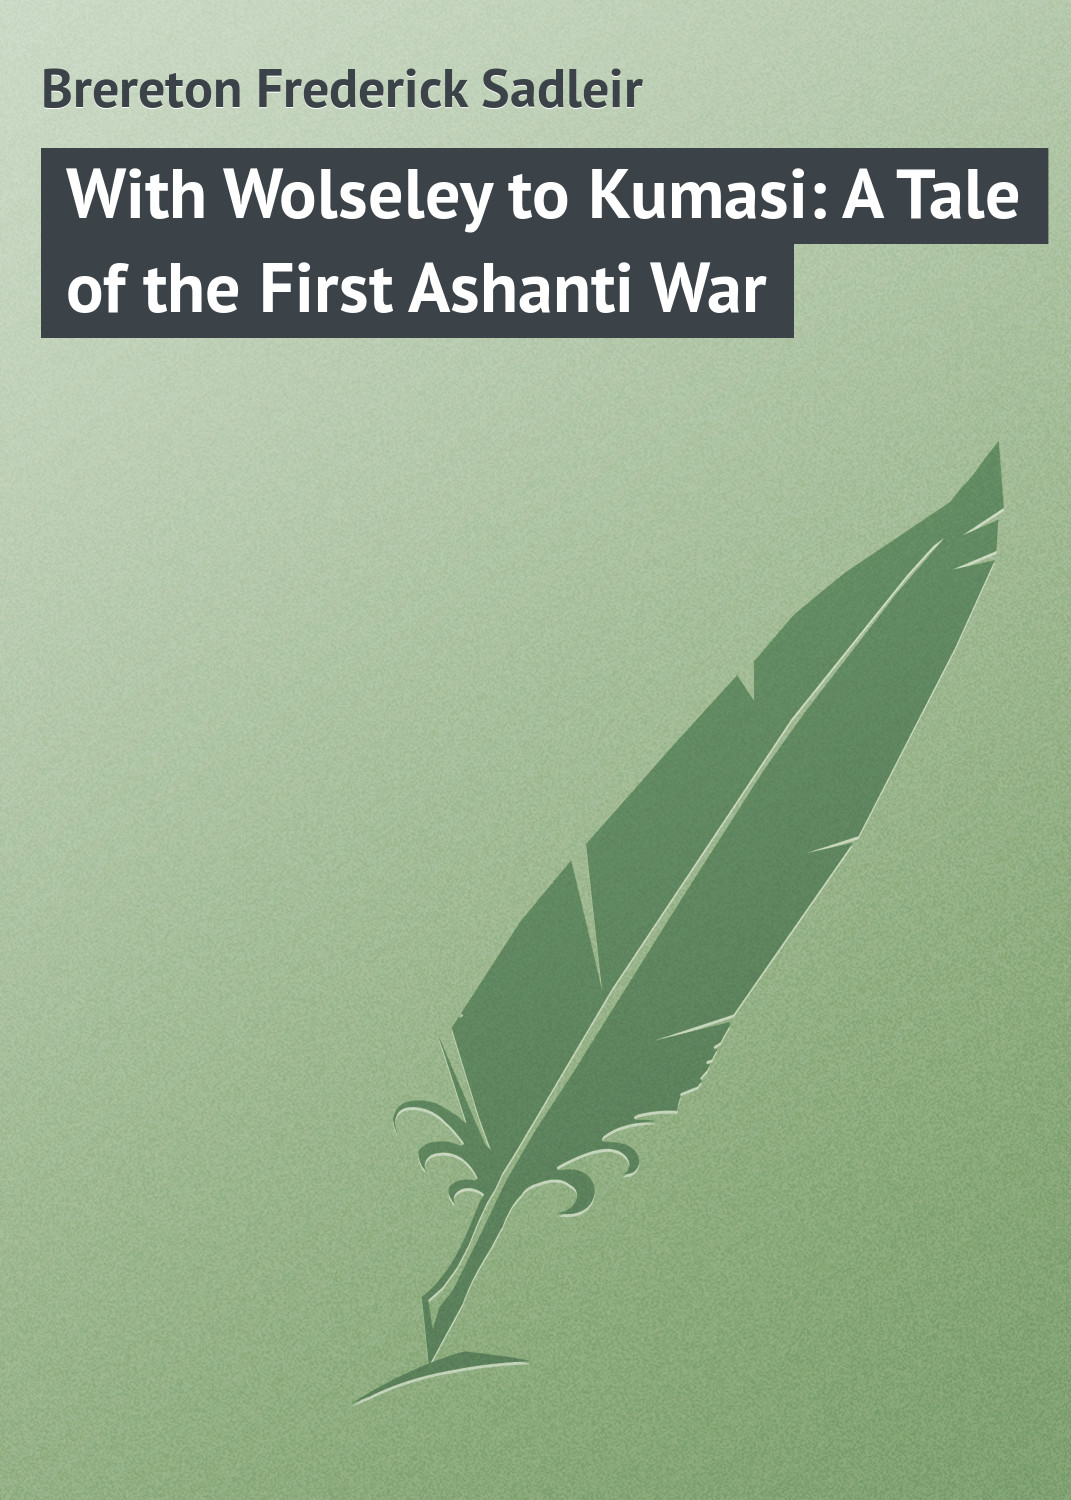 Brereton Frederick Sadleir With Wolseley to Kumasi: A Tale of the First Ashanti War